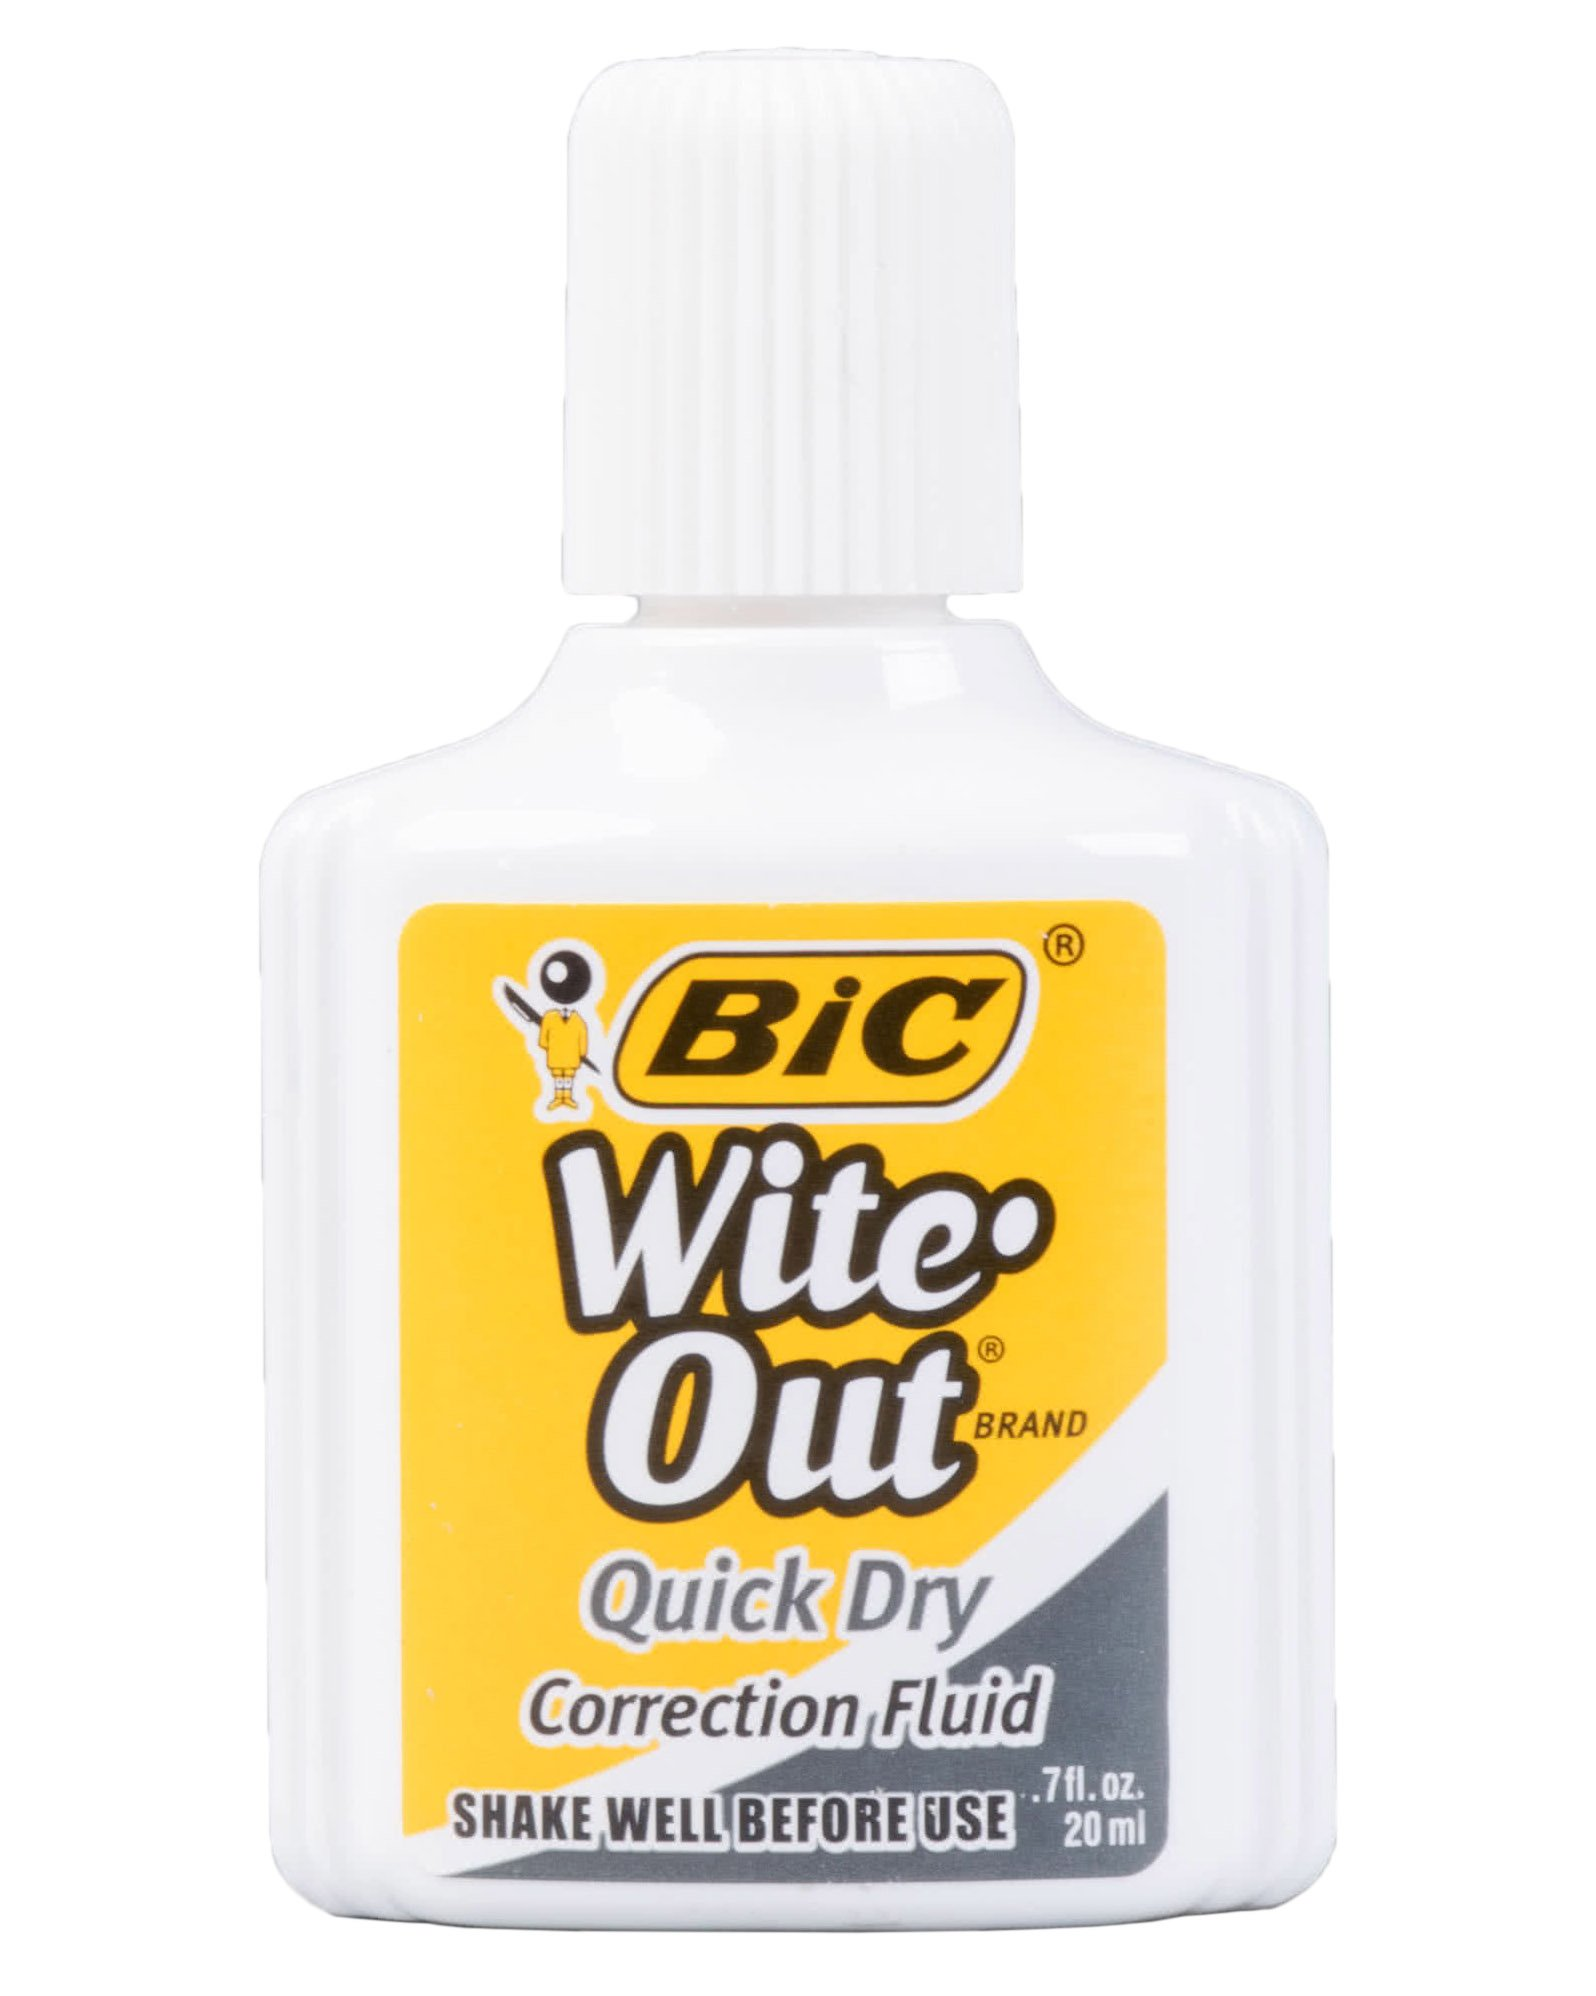 Set of 12 Wite-Out Quick Dry Correction Fluid -.7fl.oz./20ml per Bottle - Foam Wand Applicator - White - Works on Red and Dark Ink and Permanent Marker! by BicWite-Out (Image #2)